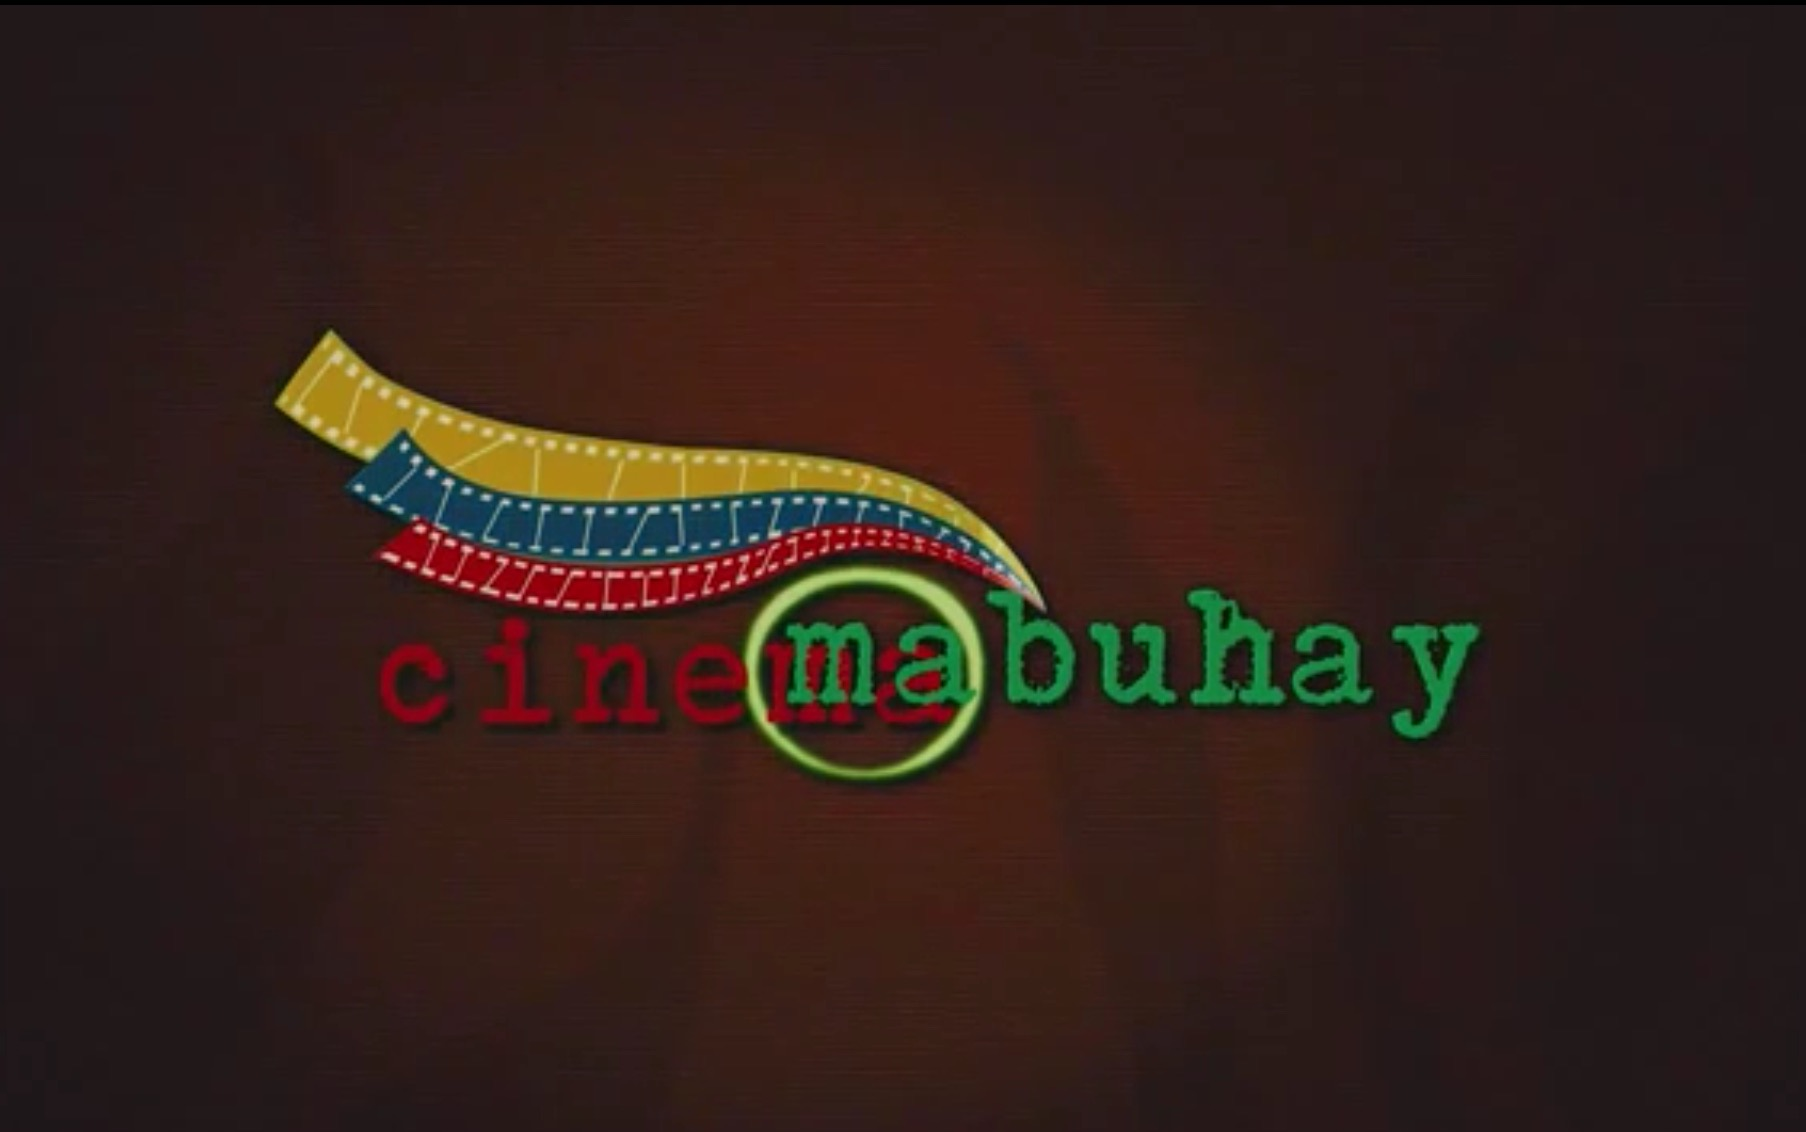 CineMabuhay